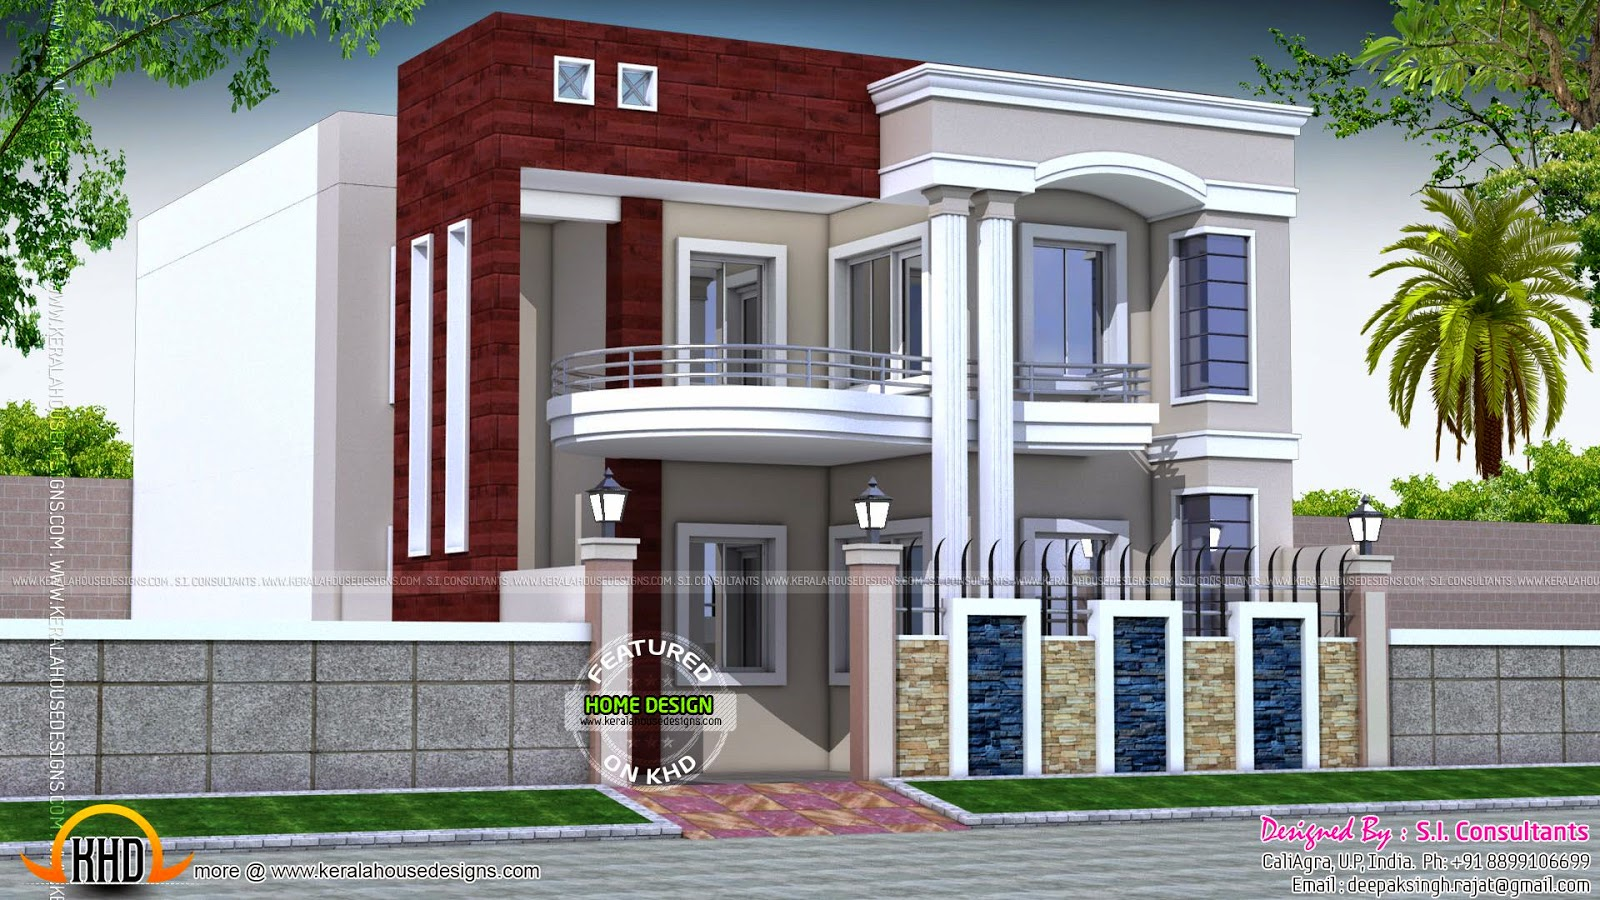 House design in north india kerala home design and floor Indian small house design pictures